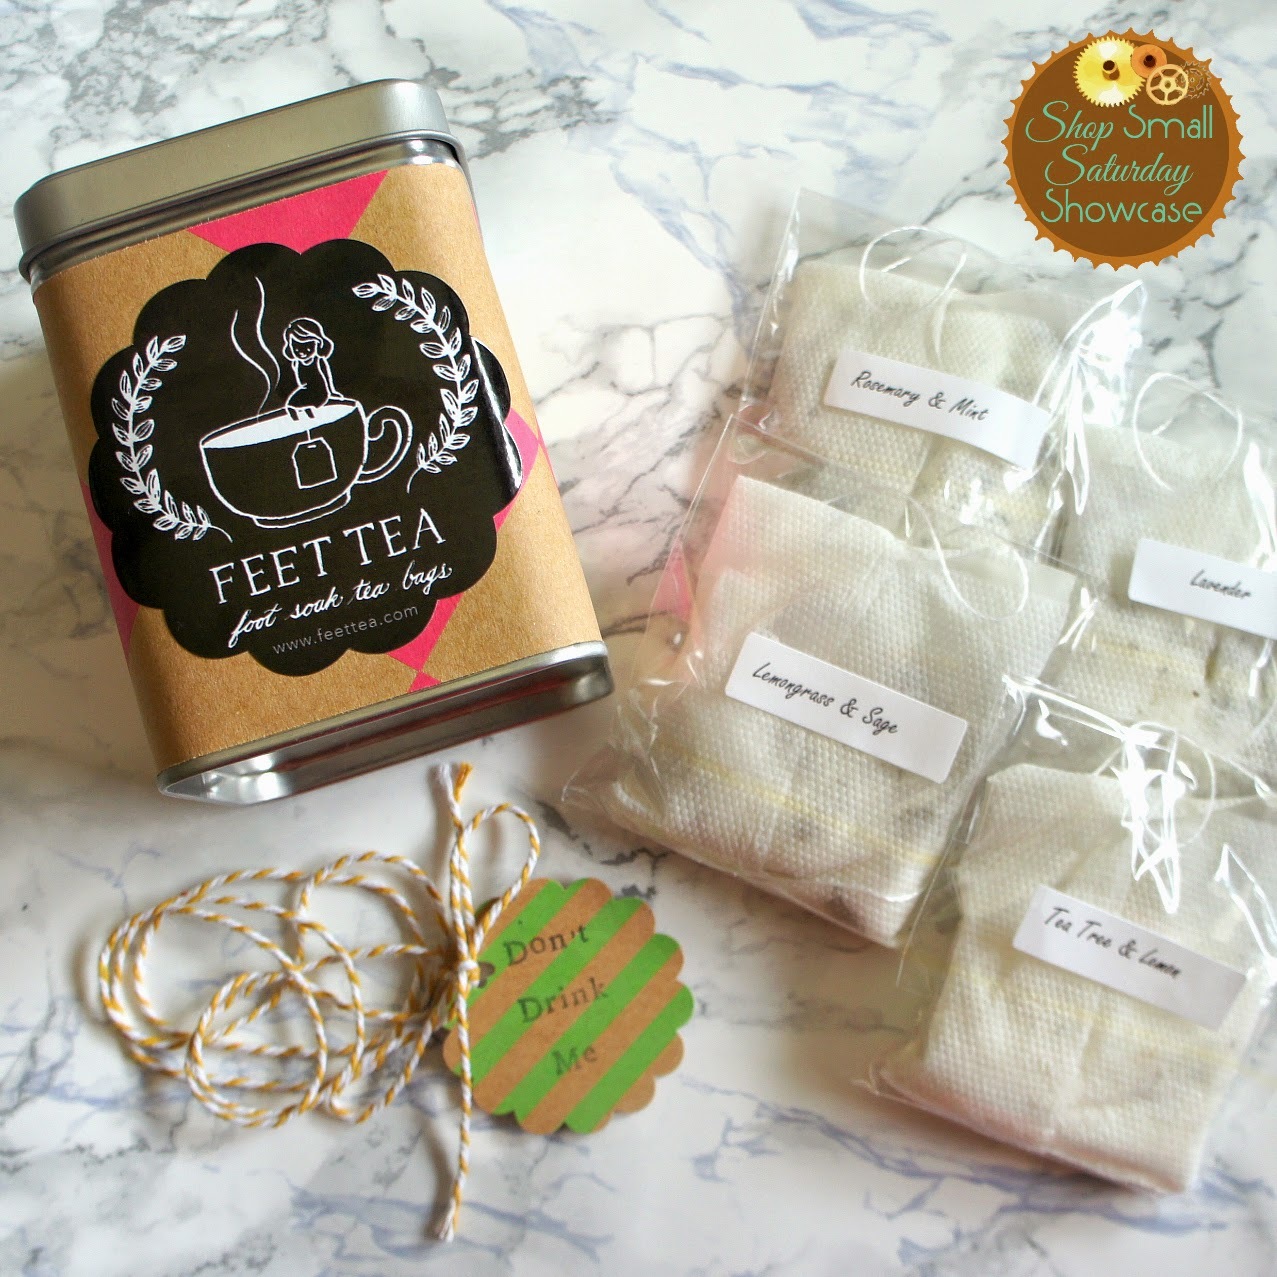 Feet Tea feature & GIVEAWAY on Shop Small Saturday at Diane's Vintage Zest!  #beauty #relax #spa #gift #aromatherapy